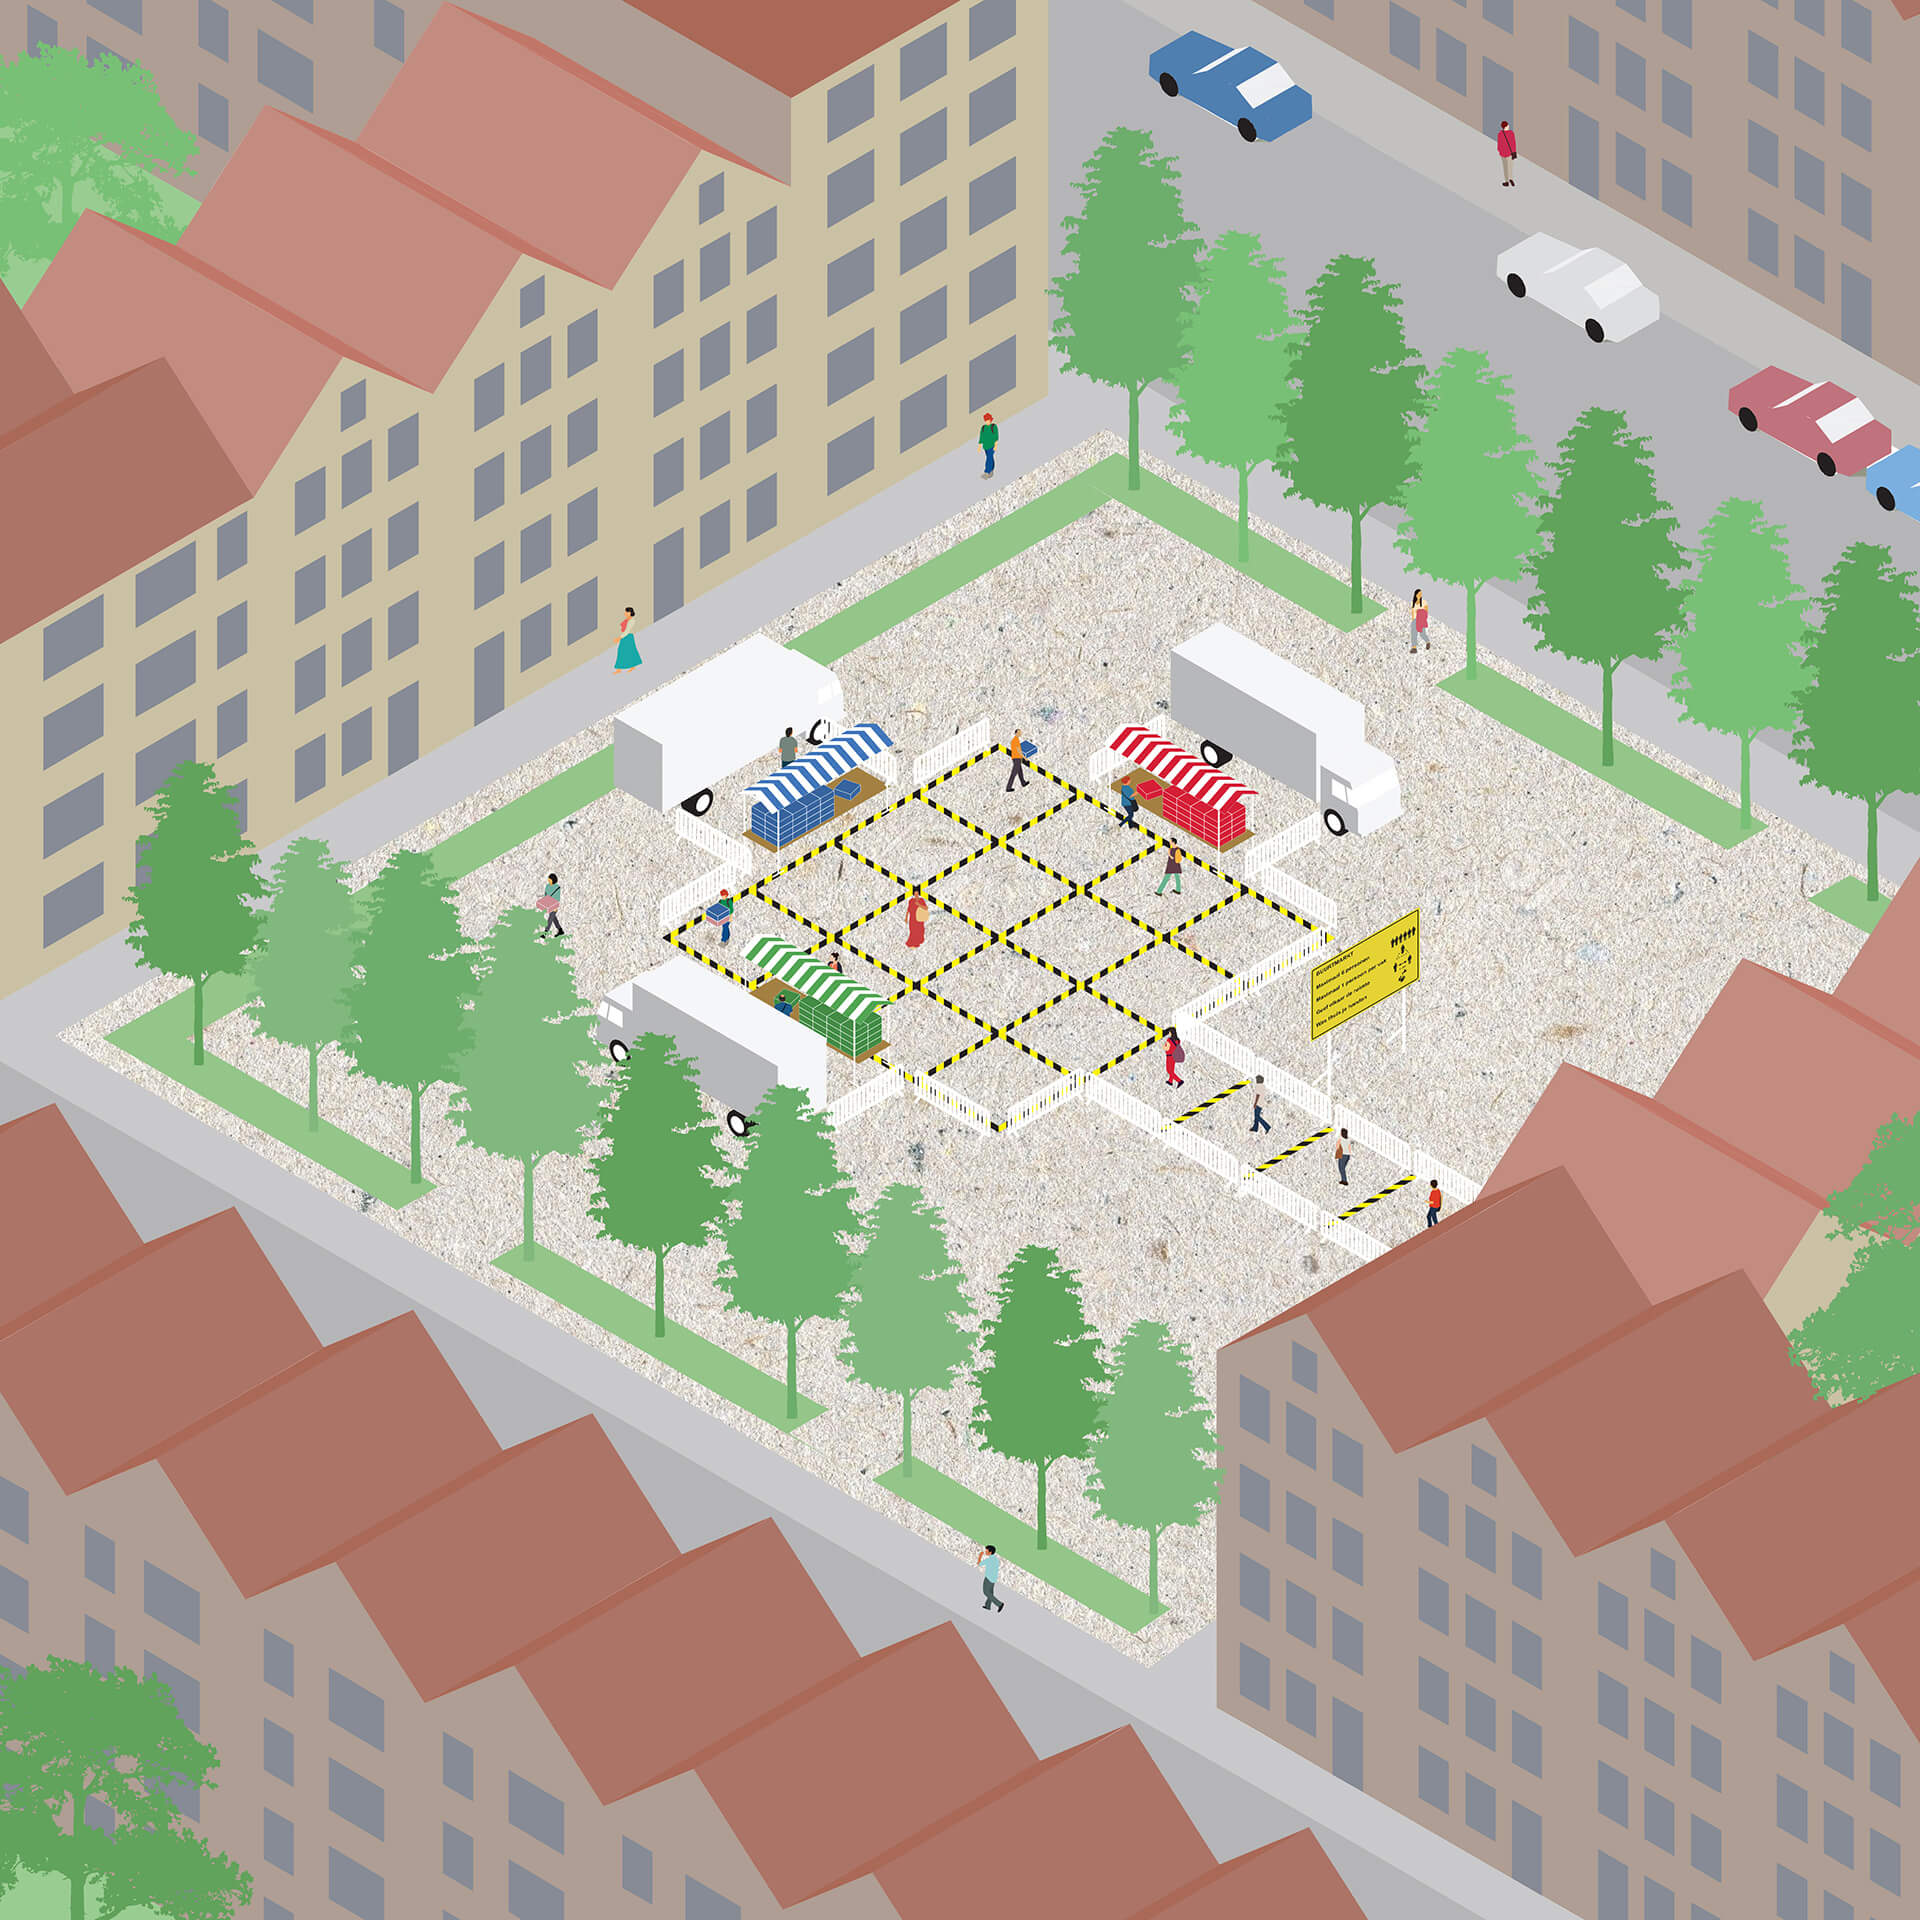 The versatile micro-market design can be replicated in sports fields, neighbourhood squares and school yards alike | Hyperlocal micro markets in shutdown realities | Shift Architecture Urbanism | STIRworld